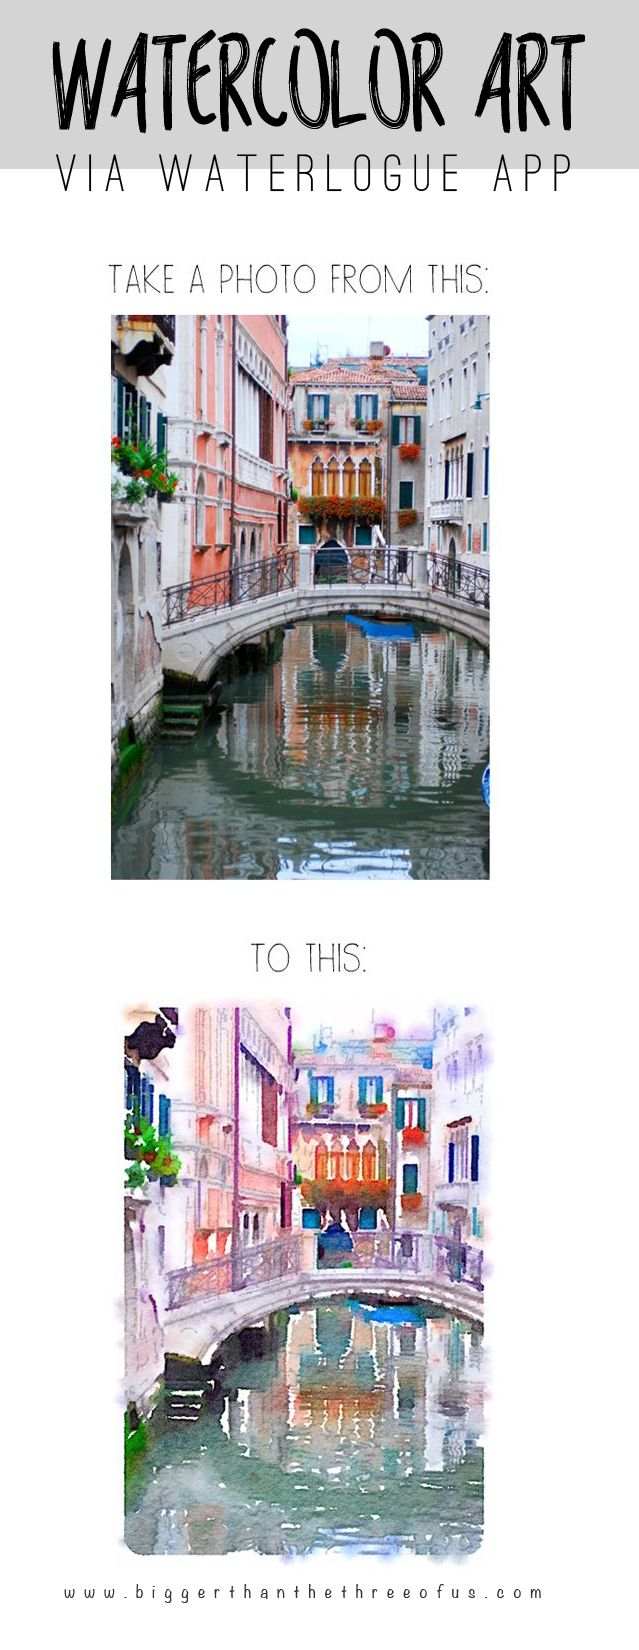 Waterlogue Travel Art : Transform travel pictures into unique pieces of Art using this simple tutorial and App